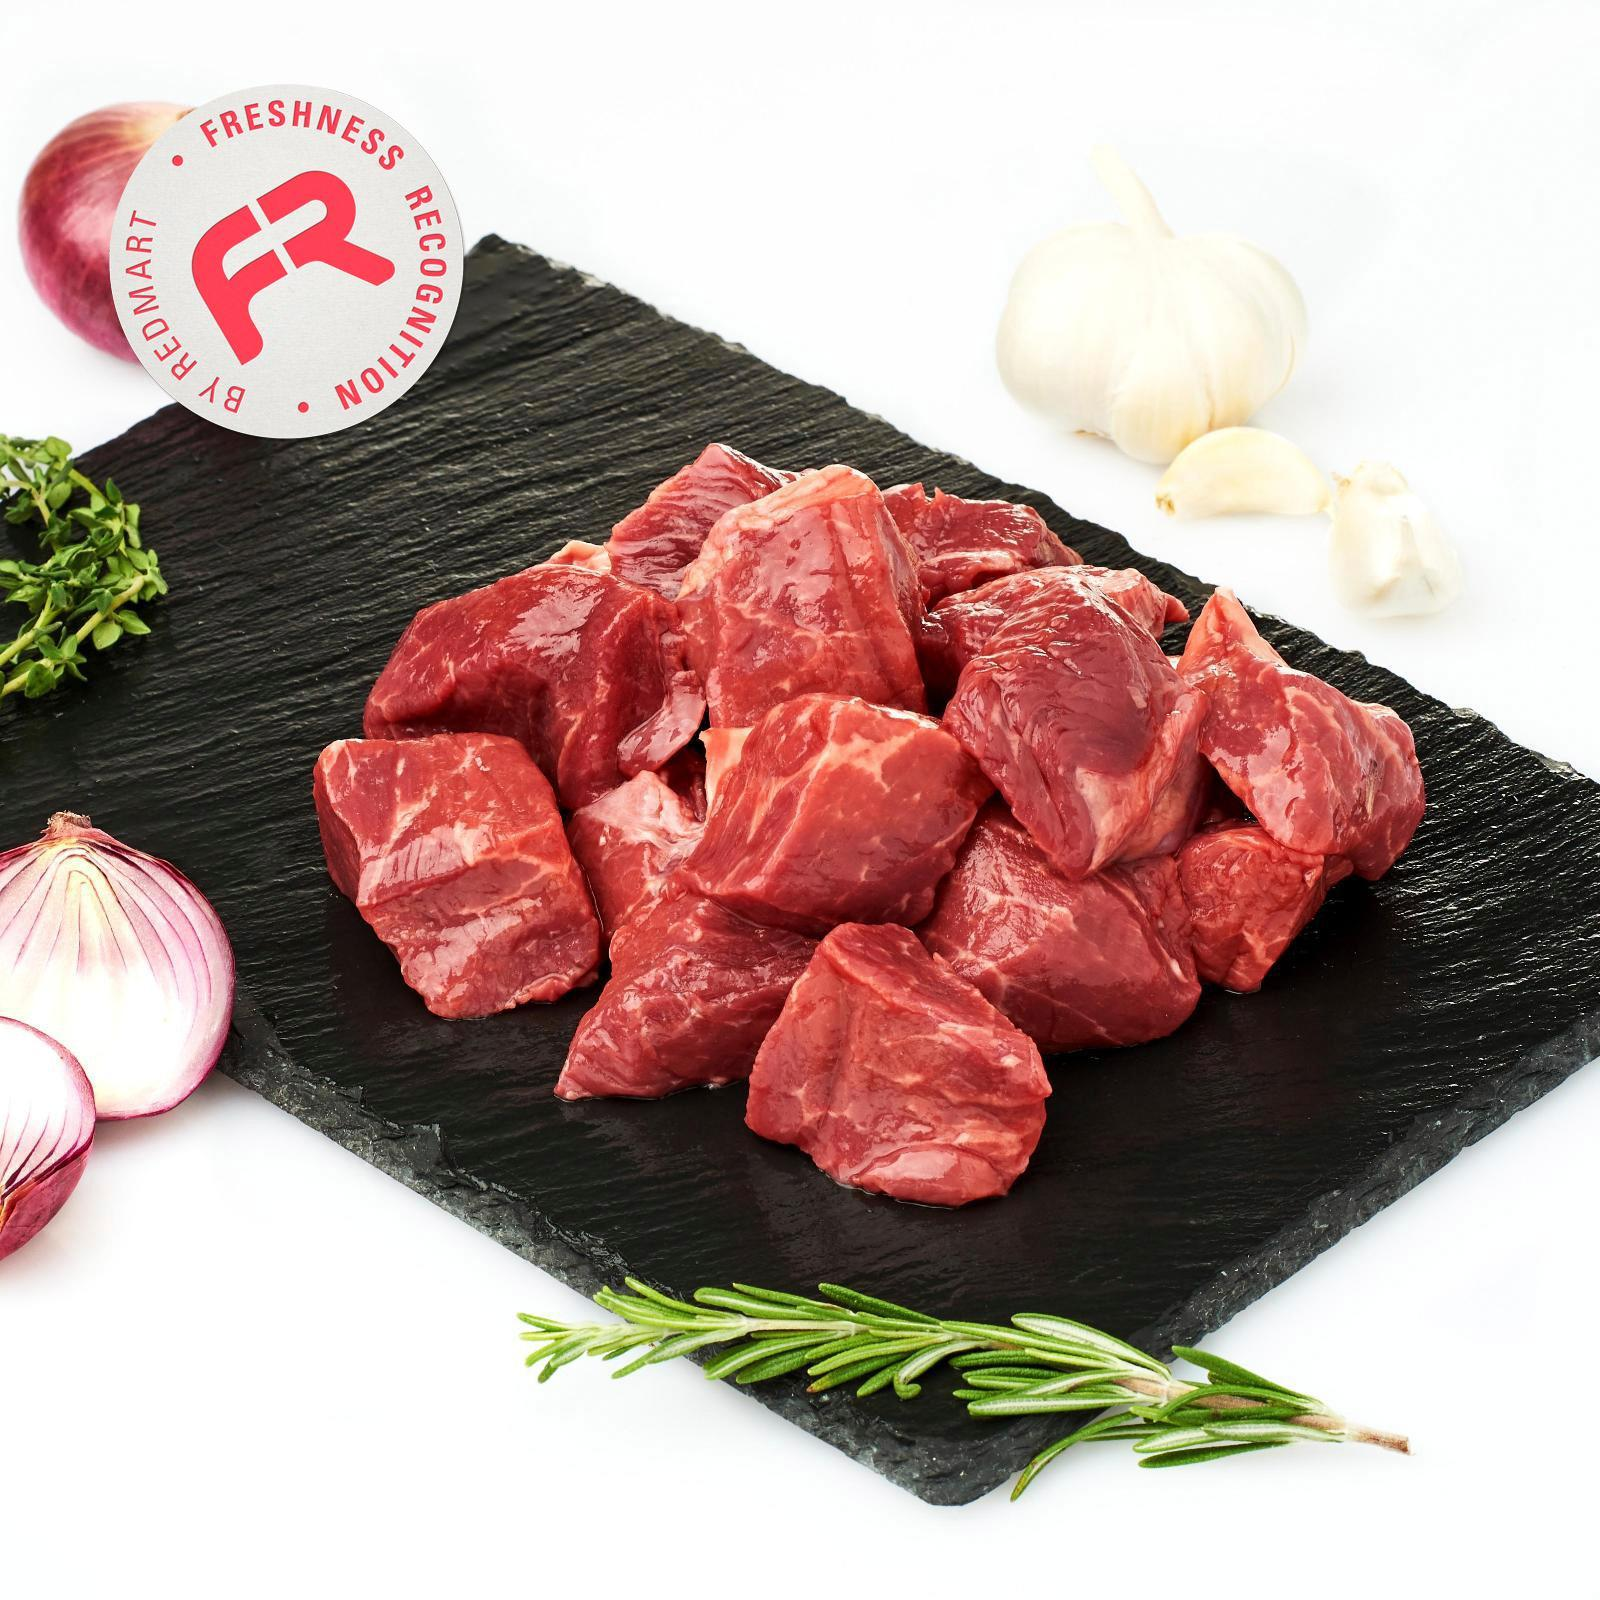 Redmart Grass Fed Angus Diced Beef - New Zealand By Redmart.